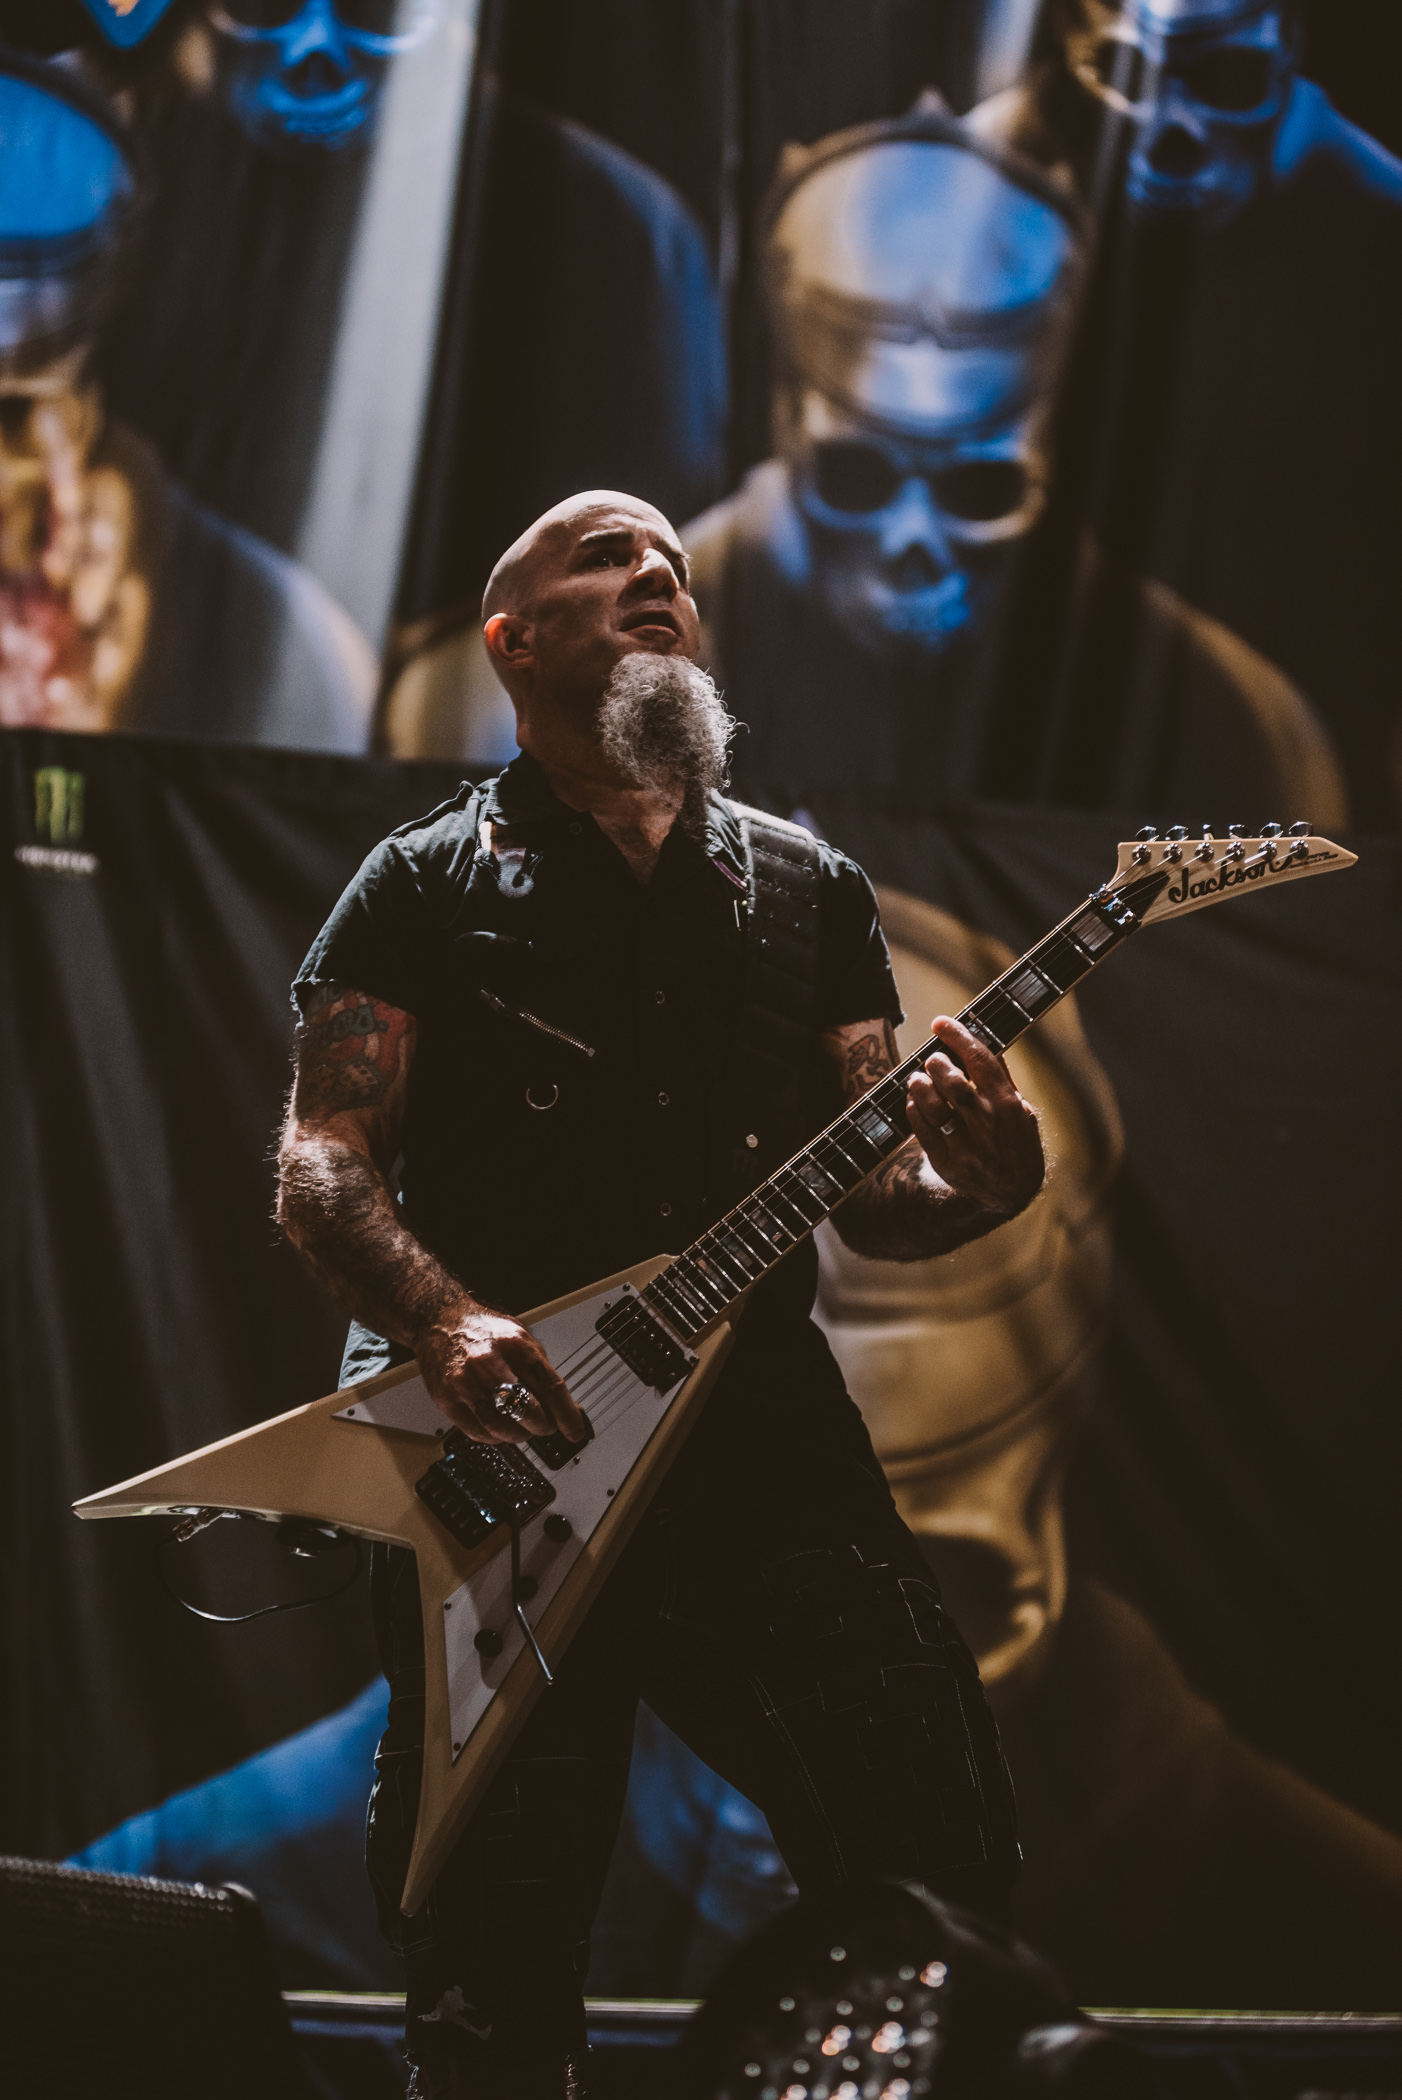 3_Anthrax-Pacific_Coliseum-Timothy_Nguyen-20180516-1.jpg